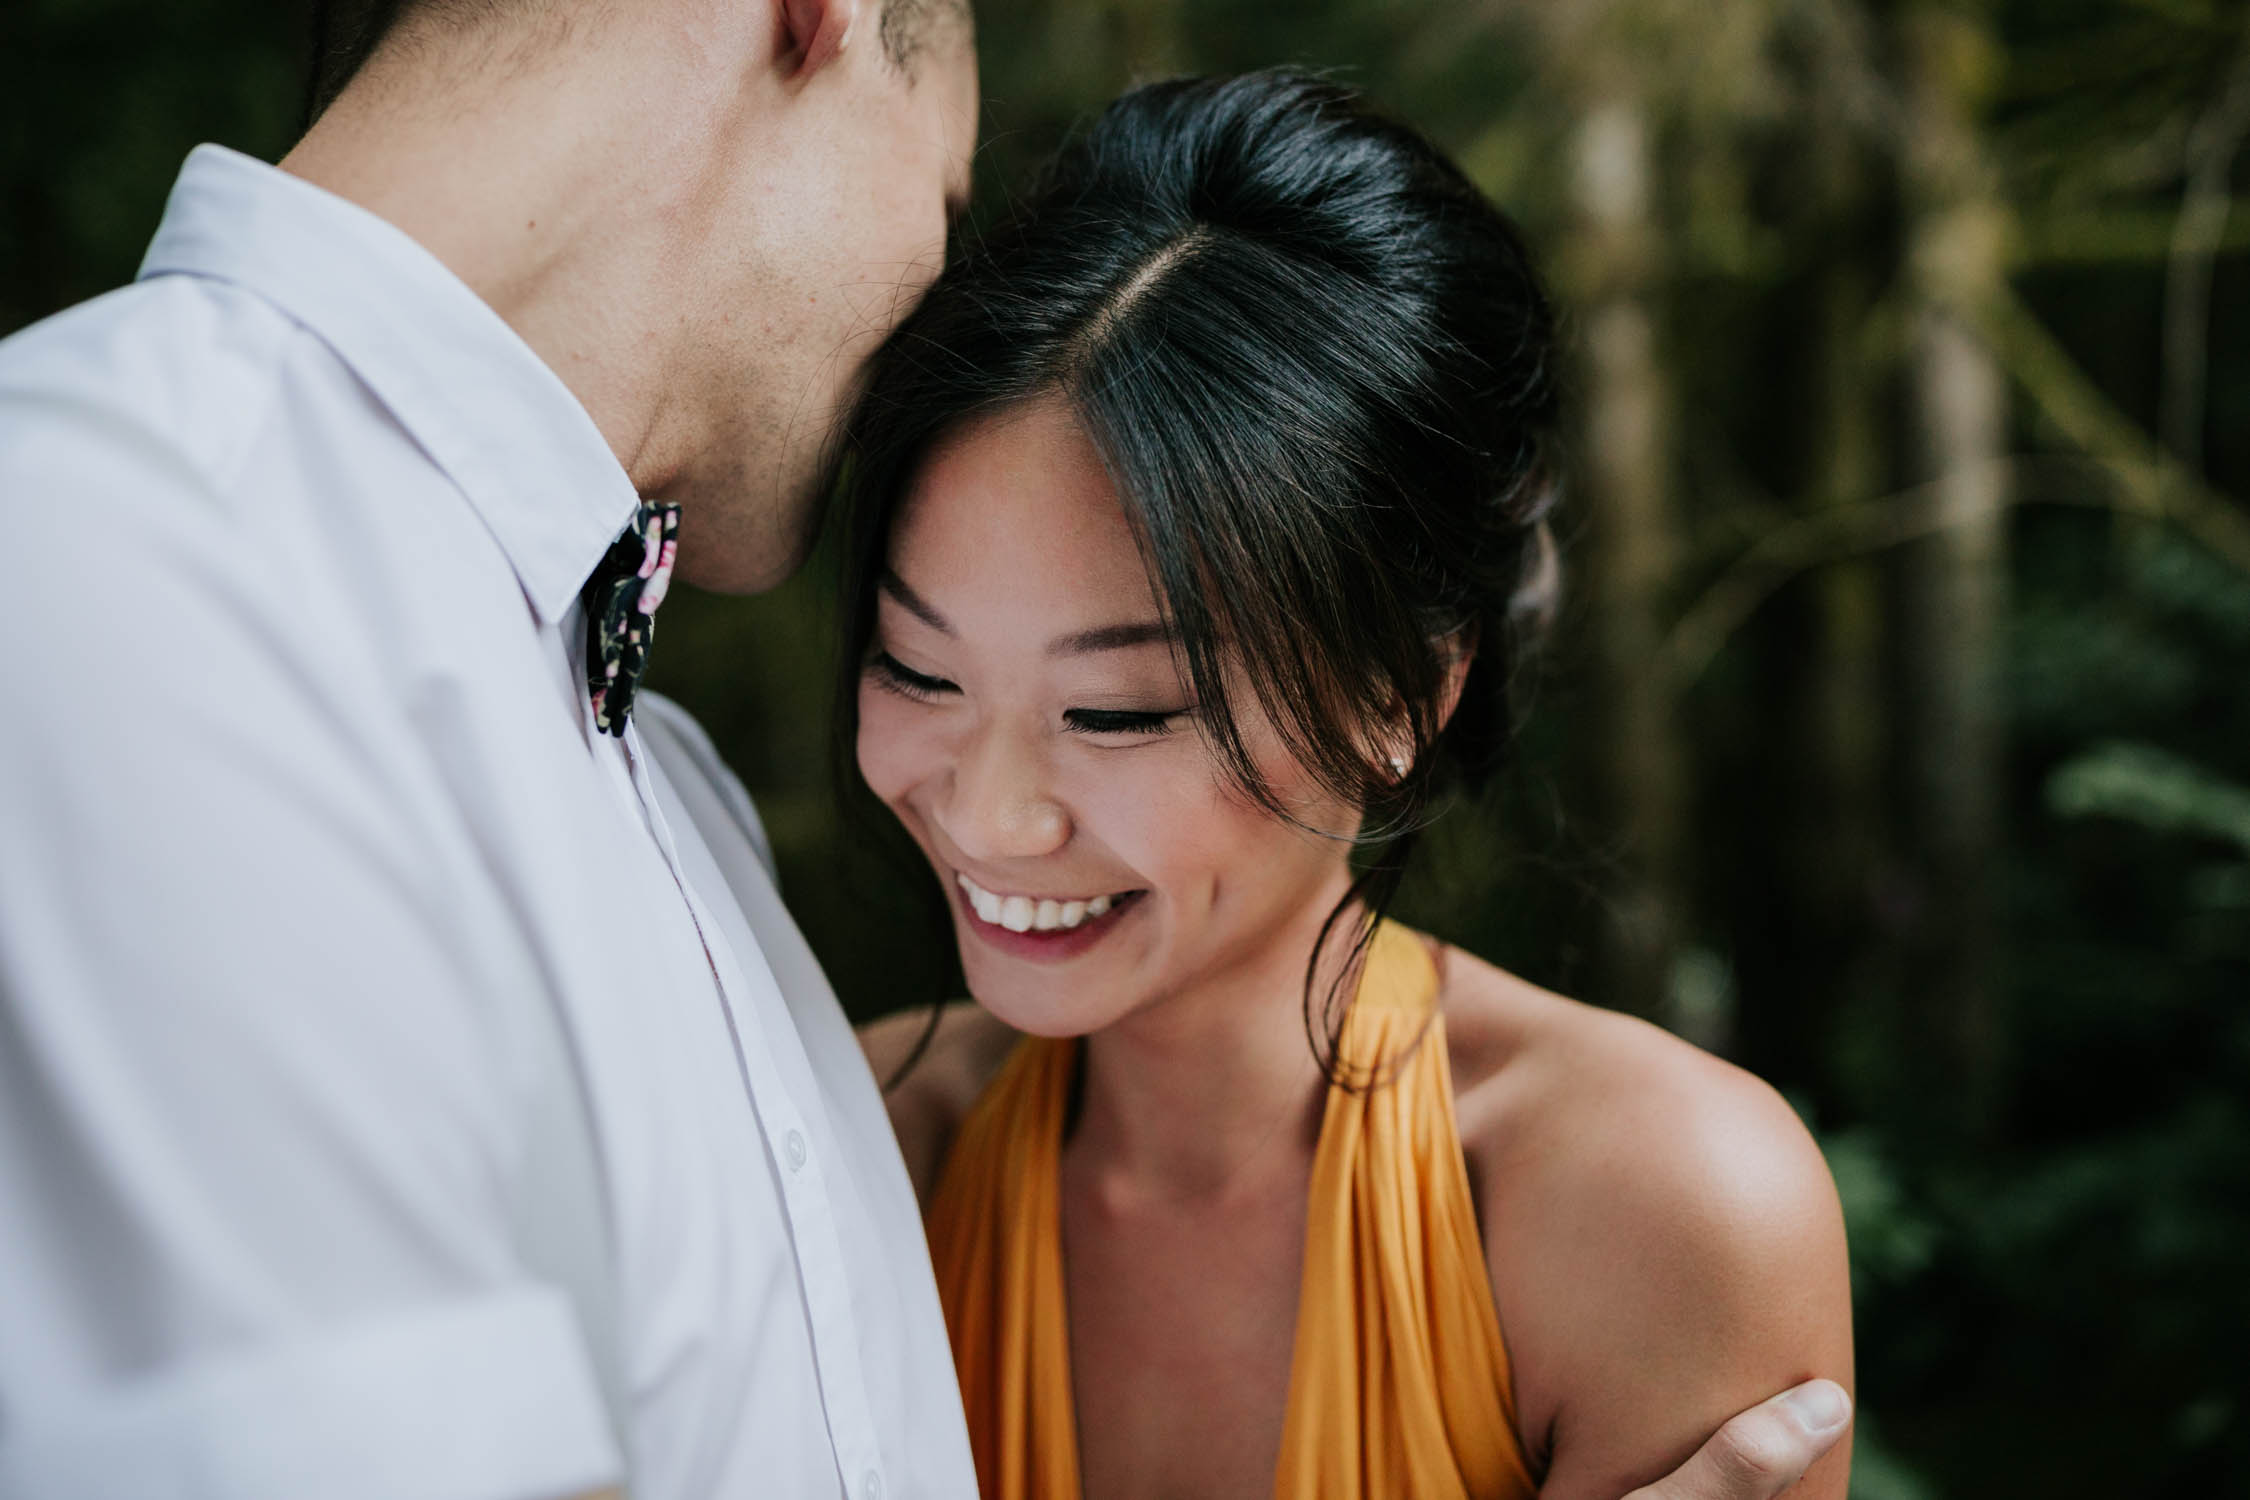 Chinese girl wearing a yellow dress laughs as her finance whispers in her ear.